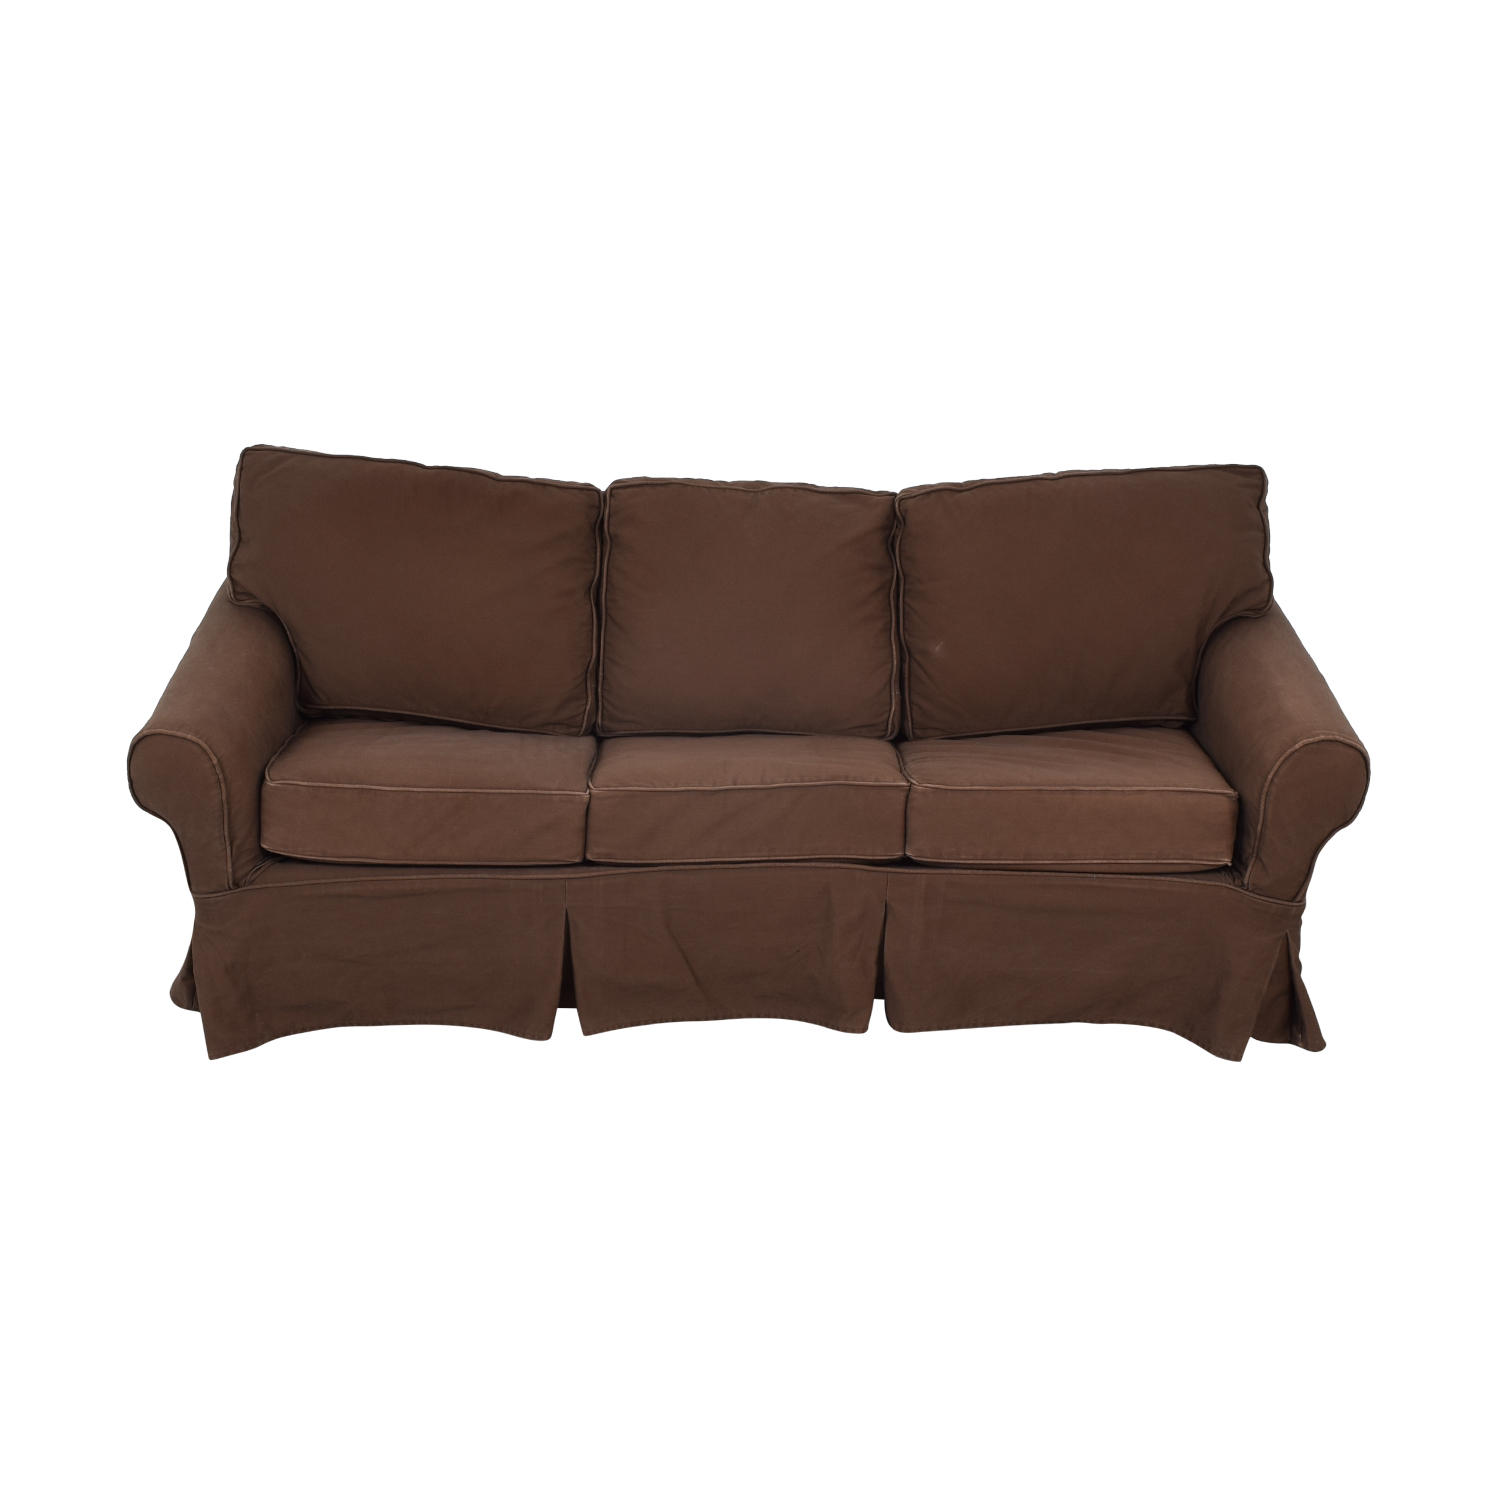 Mitchell Gold + Bob Williams Pottery Barn by Mitchell Gold + Bob Williams Sleeper Sofa coupon